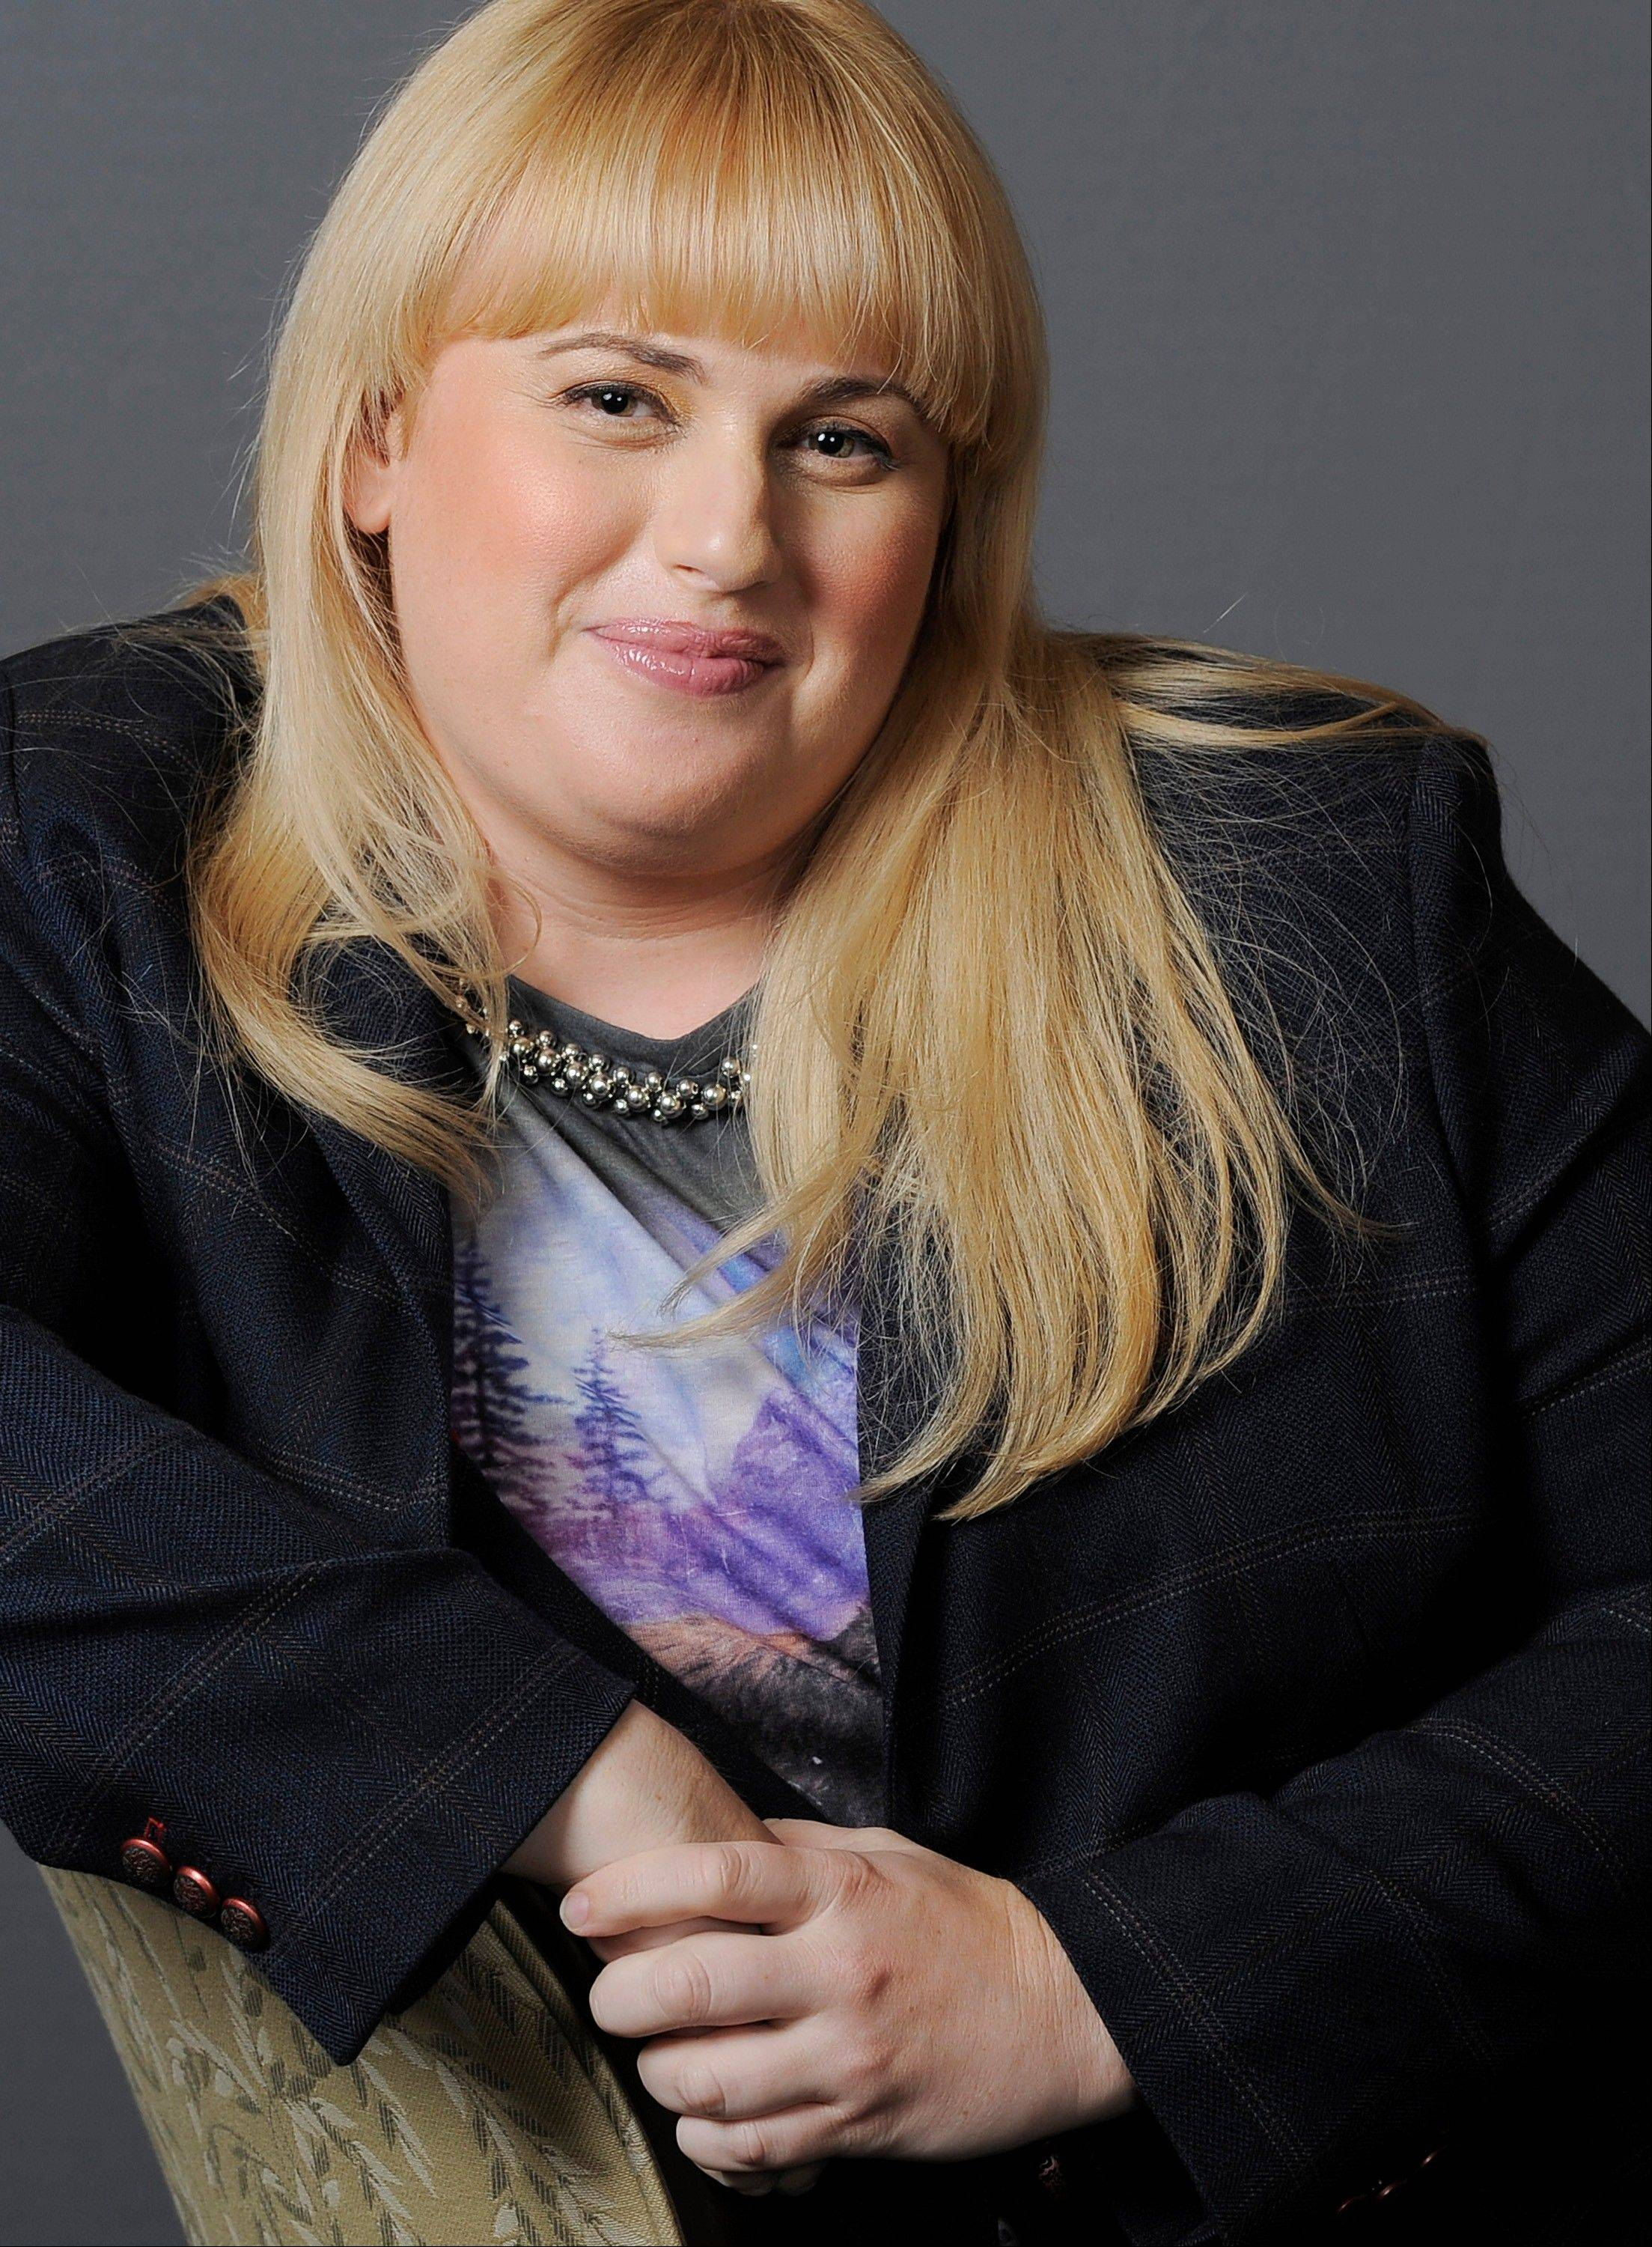 Actress, writer and comedienne Rebel Wilson sings, dances and summons laughs -- and that's just in the opening moments of the upcoming MTV Movie Awards Sunday. The Australian actress is hosting the show, and she's set to start the ceremony by singing solo.